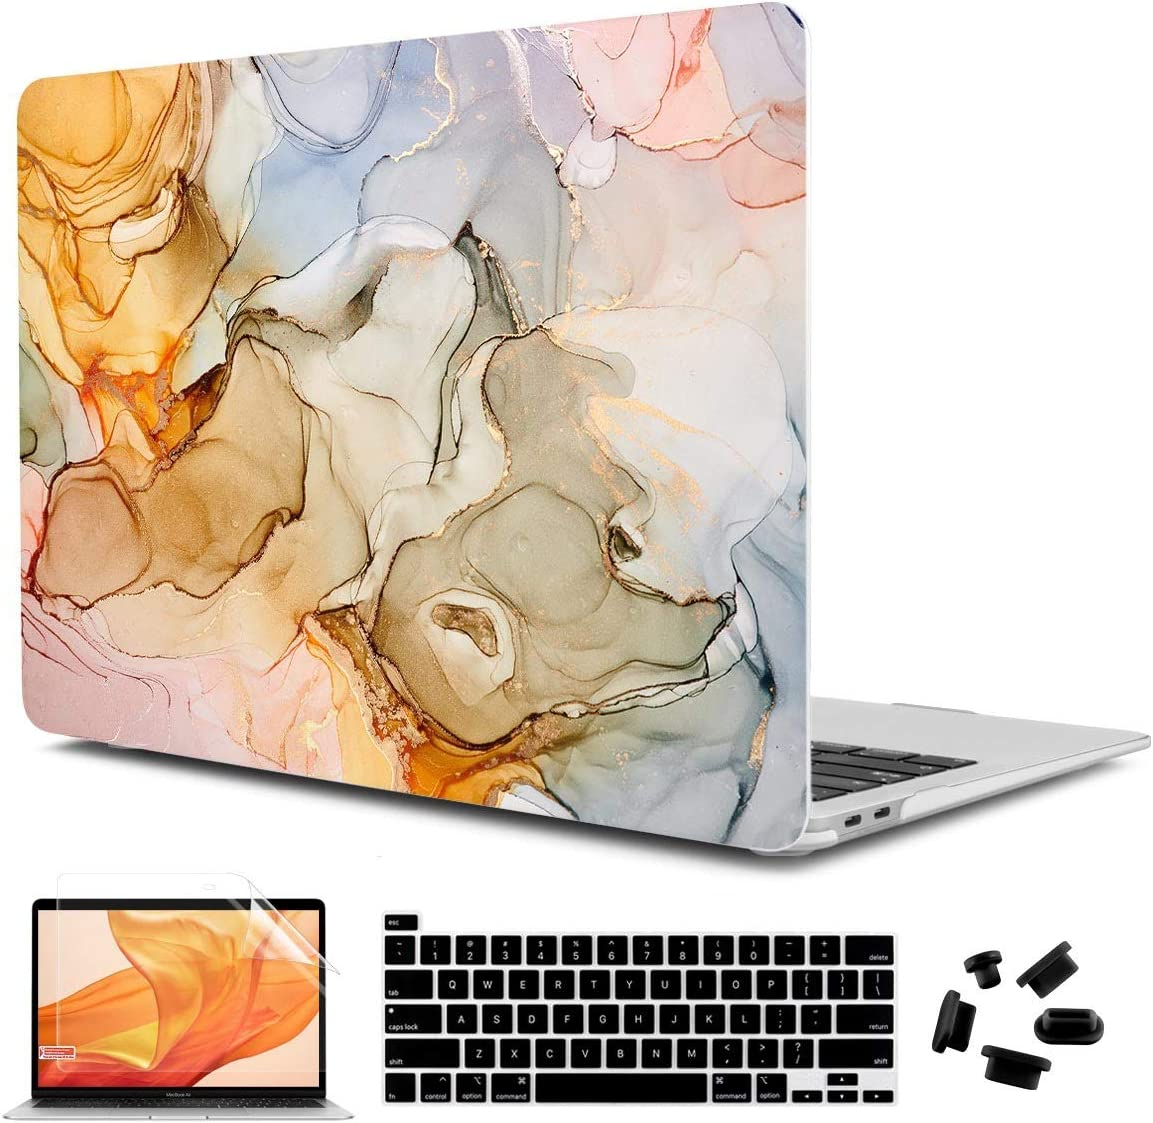 "CiSoo Laptop Hard Shell Case for MacBook Pro 13 2020 Release Model A2289 A2251, Plastic Marble Pro Cover for Mac Pro 13"" Touch Bar with Keyboard Cover & Screen Protector, Golden Marble"